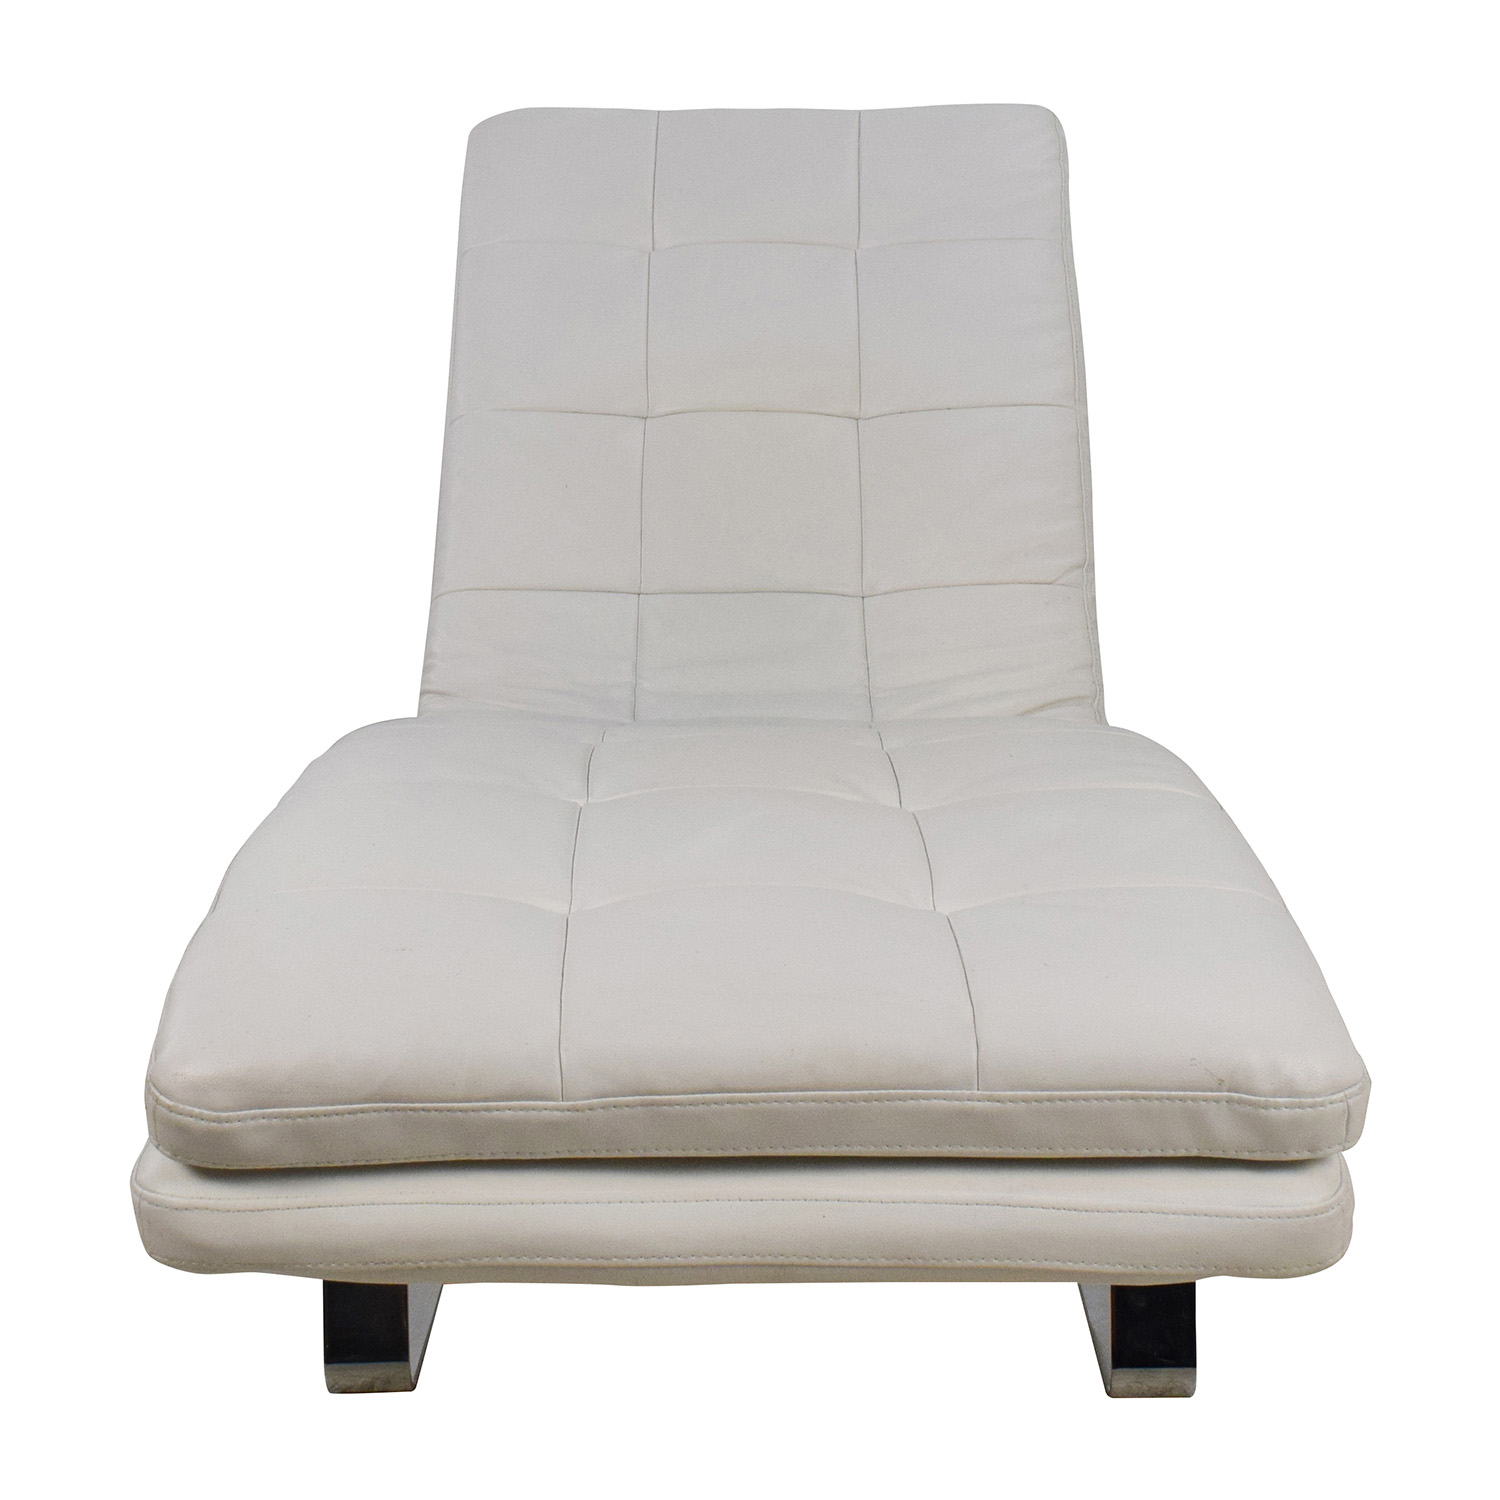 buy Faux Leather Quilted White Lounger